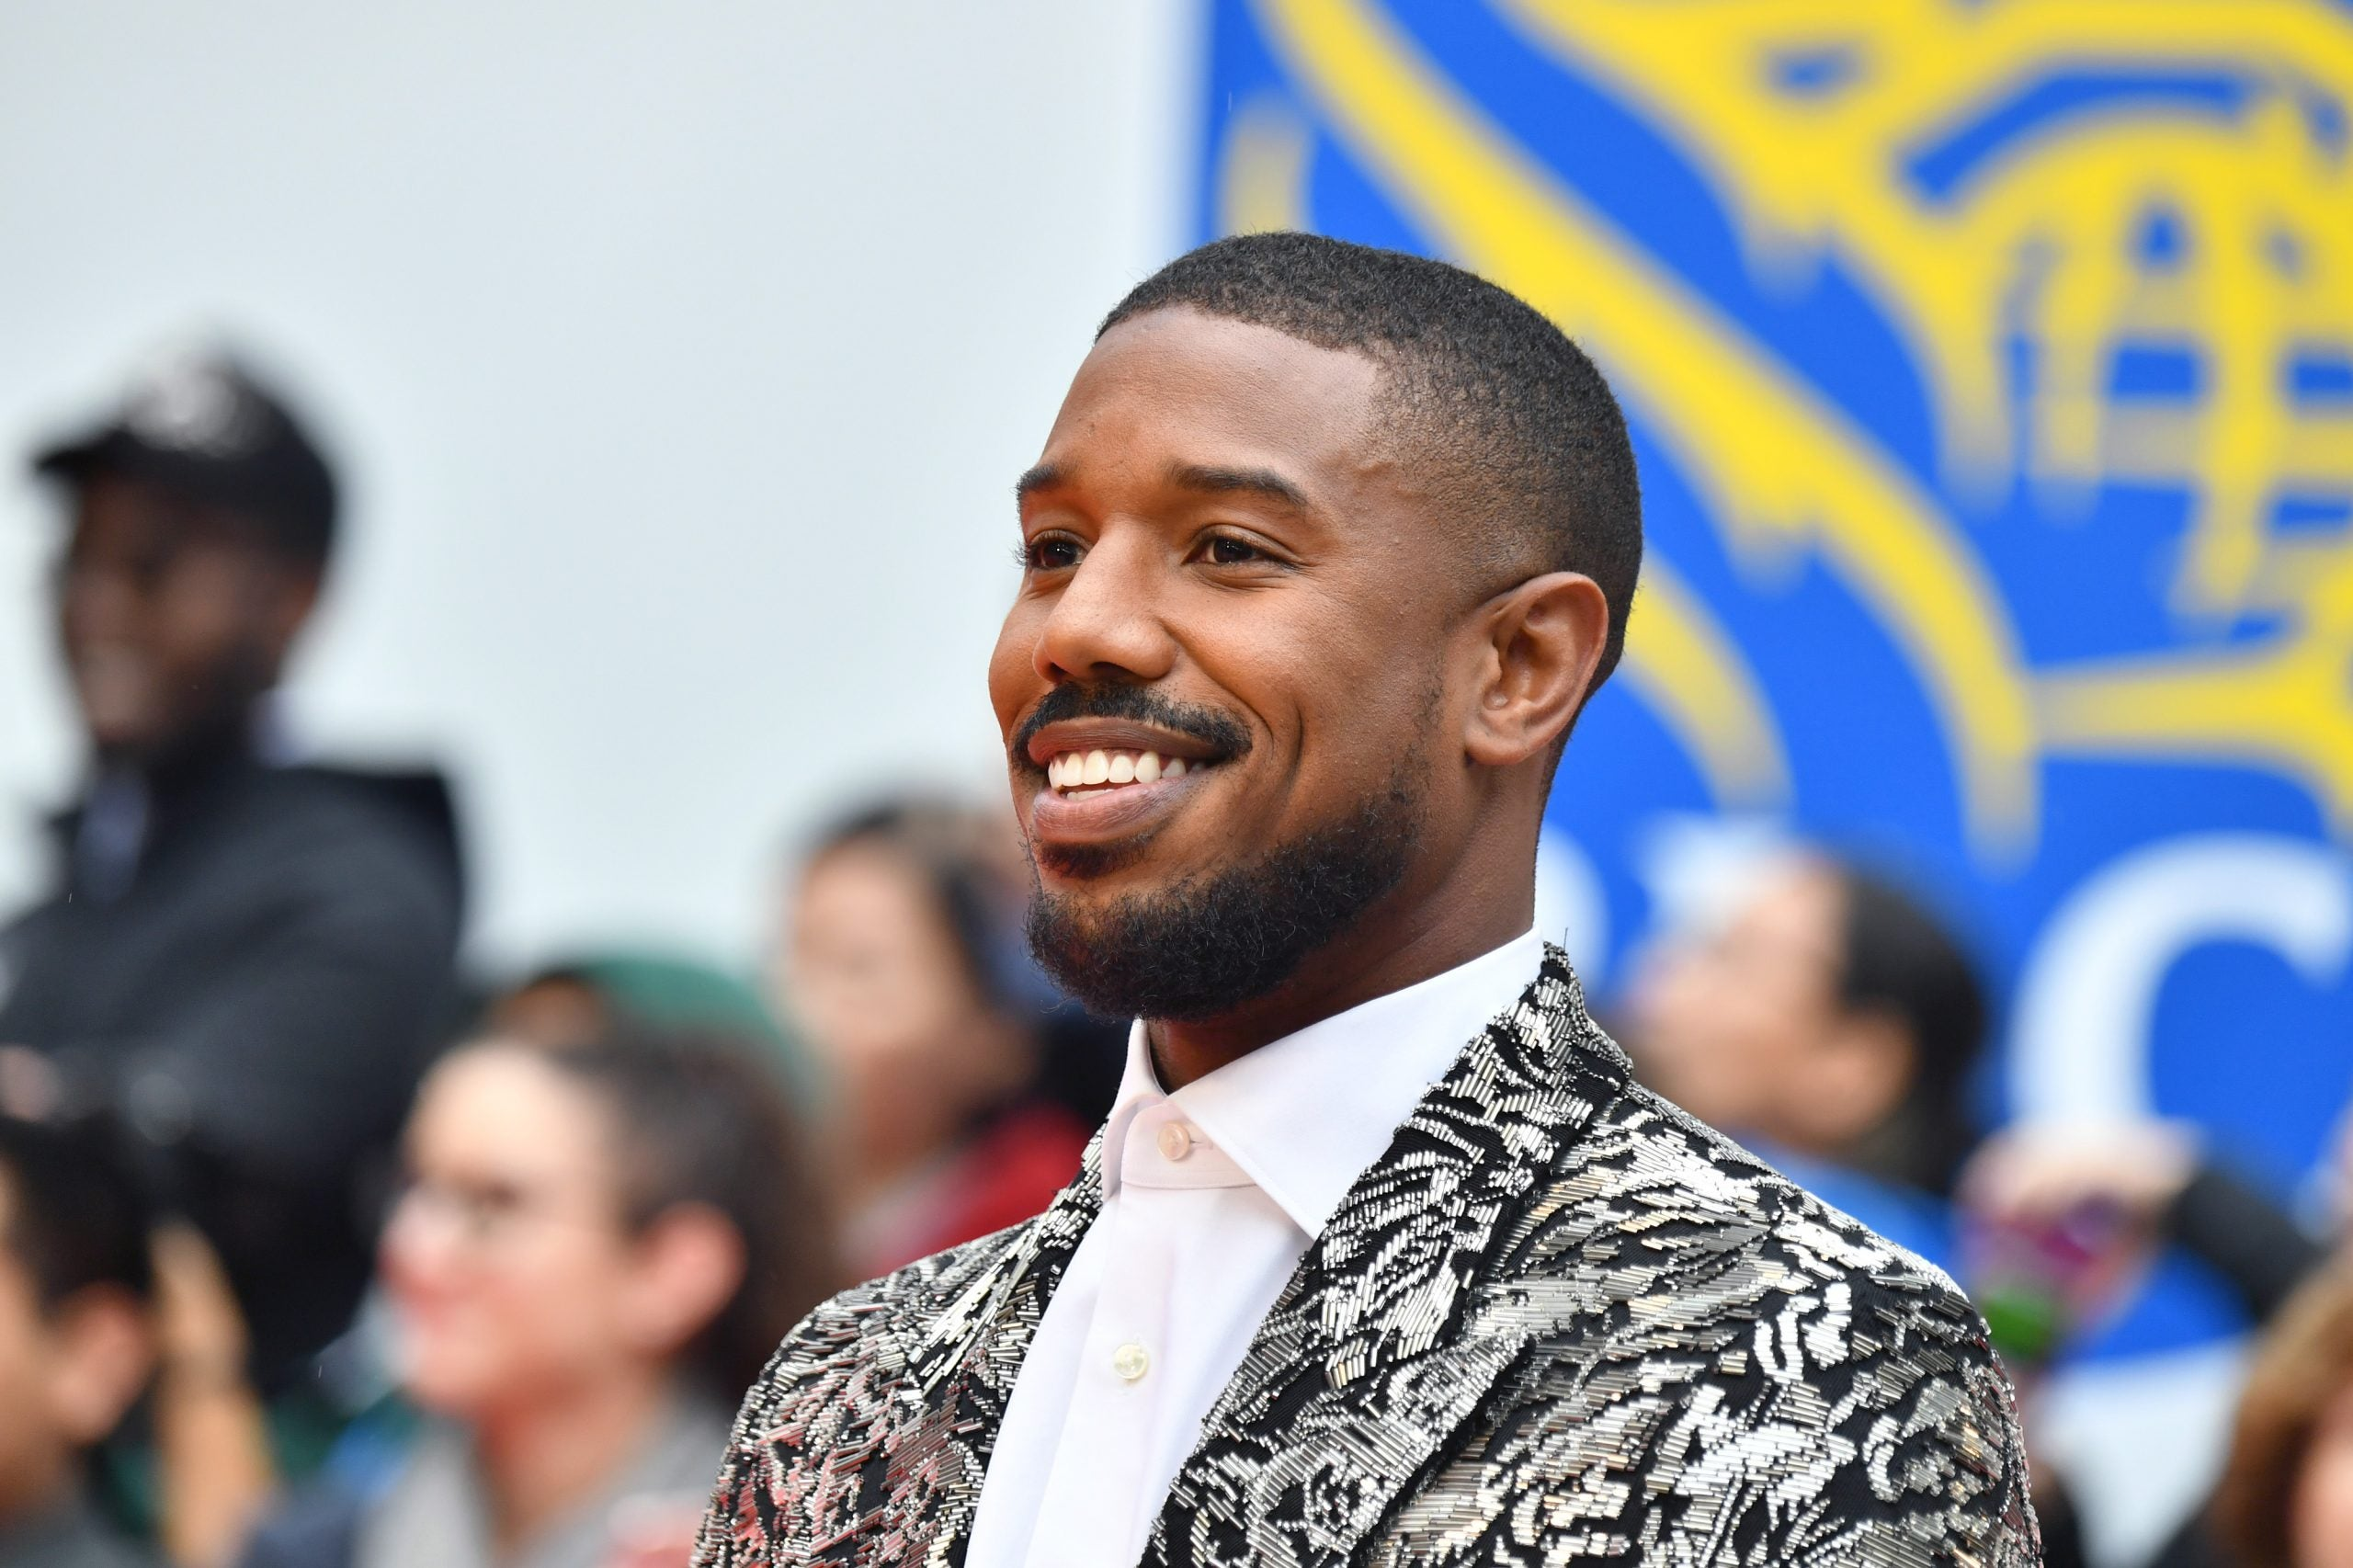 31 Sexy Photos Of Michael B. Jordan Looking So Good You Can't Help But Stare